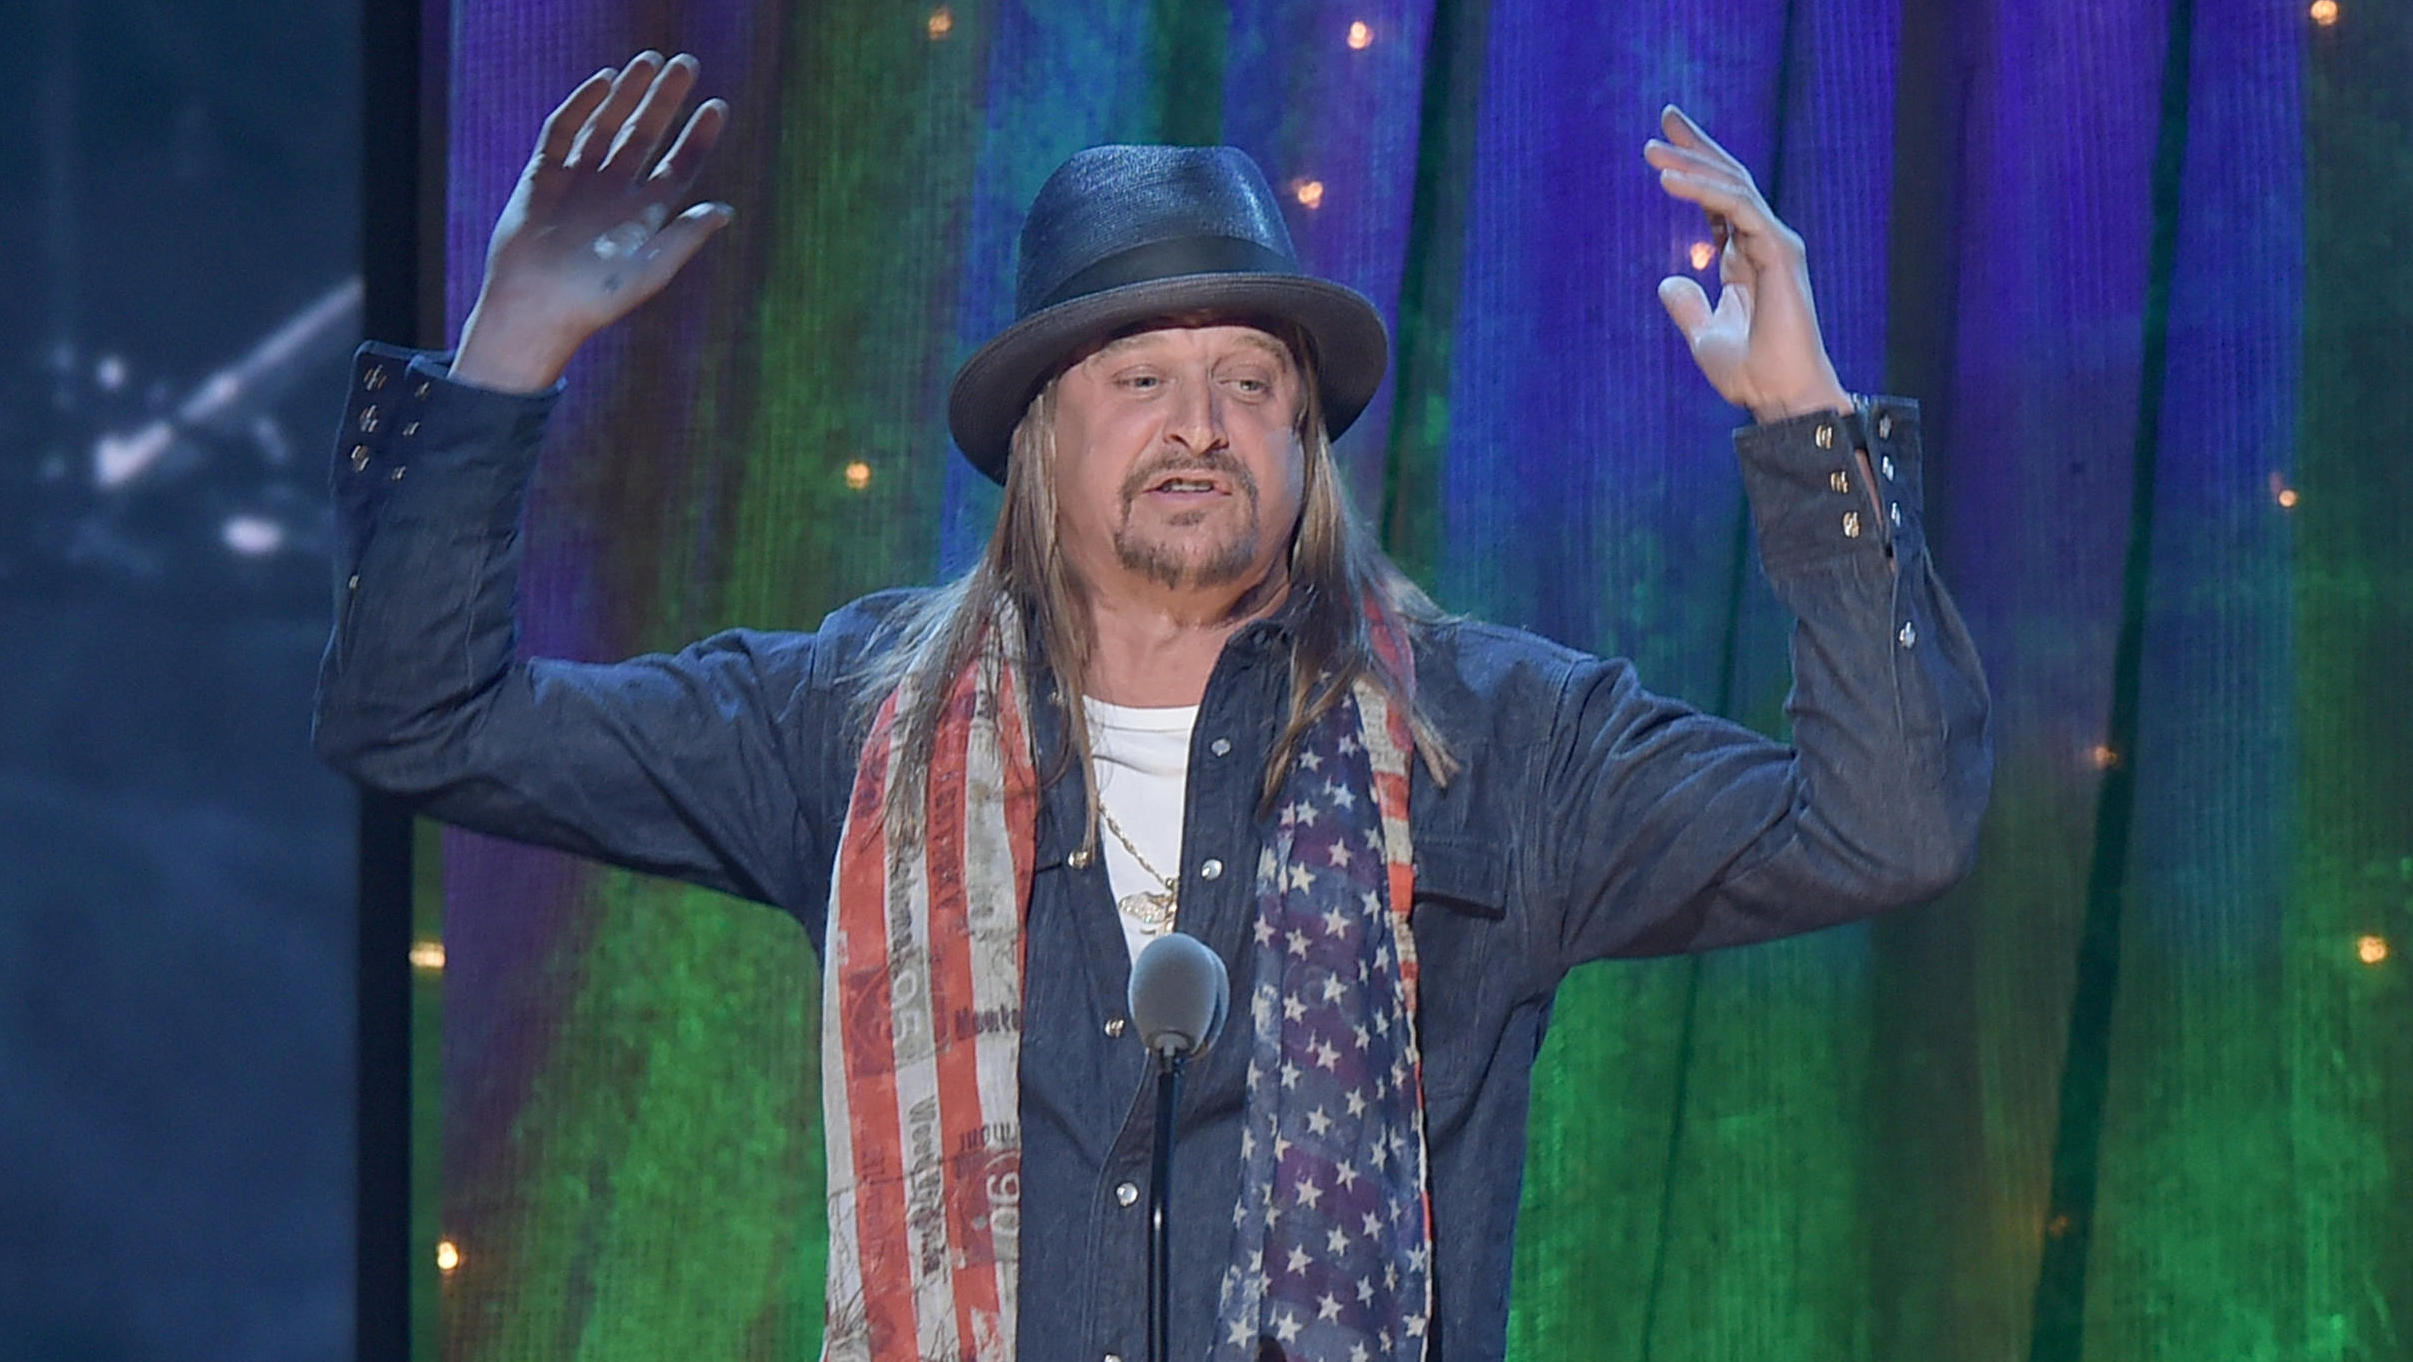 756aae3df57 Civil rights groups plan to protest Kid Rock concerts in Detroit ...